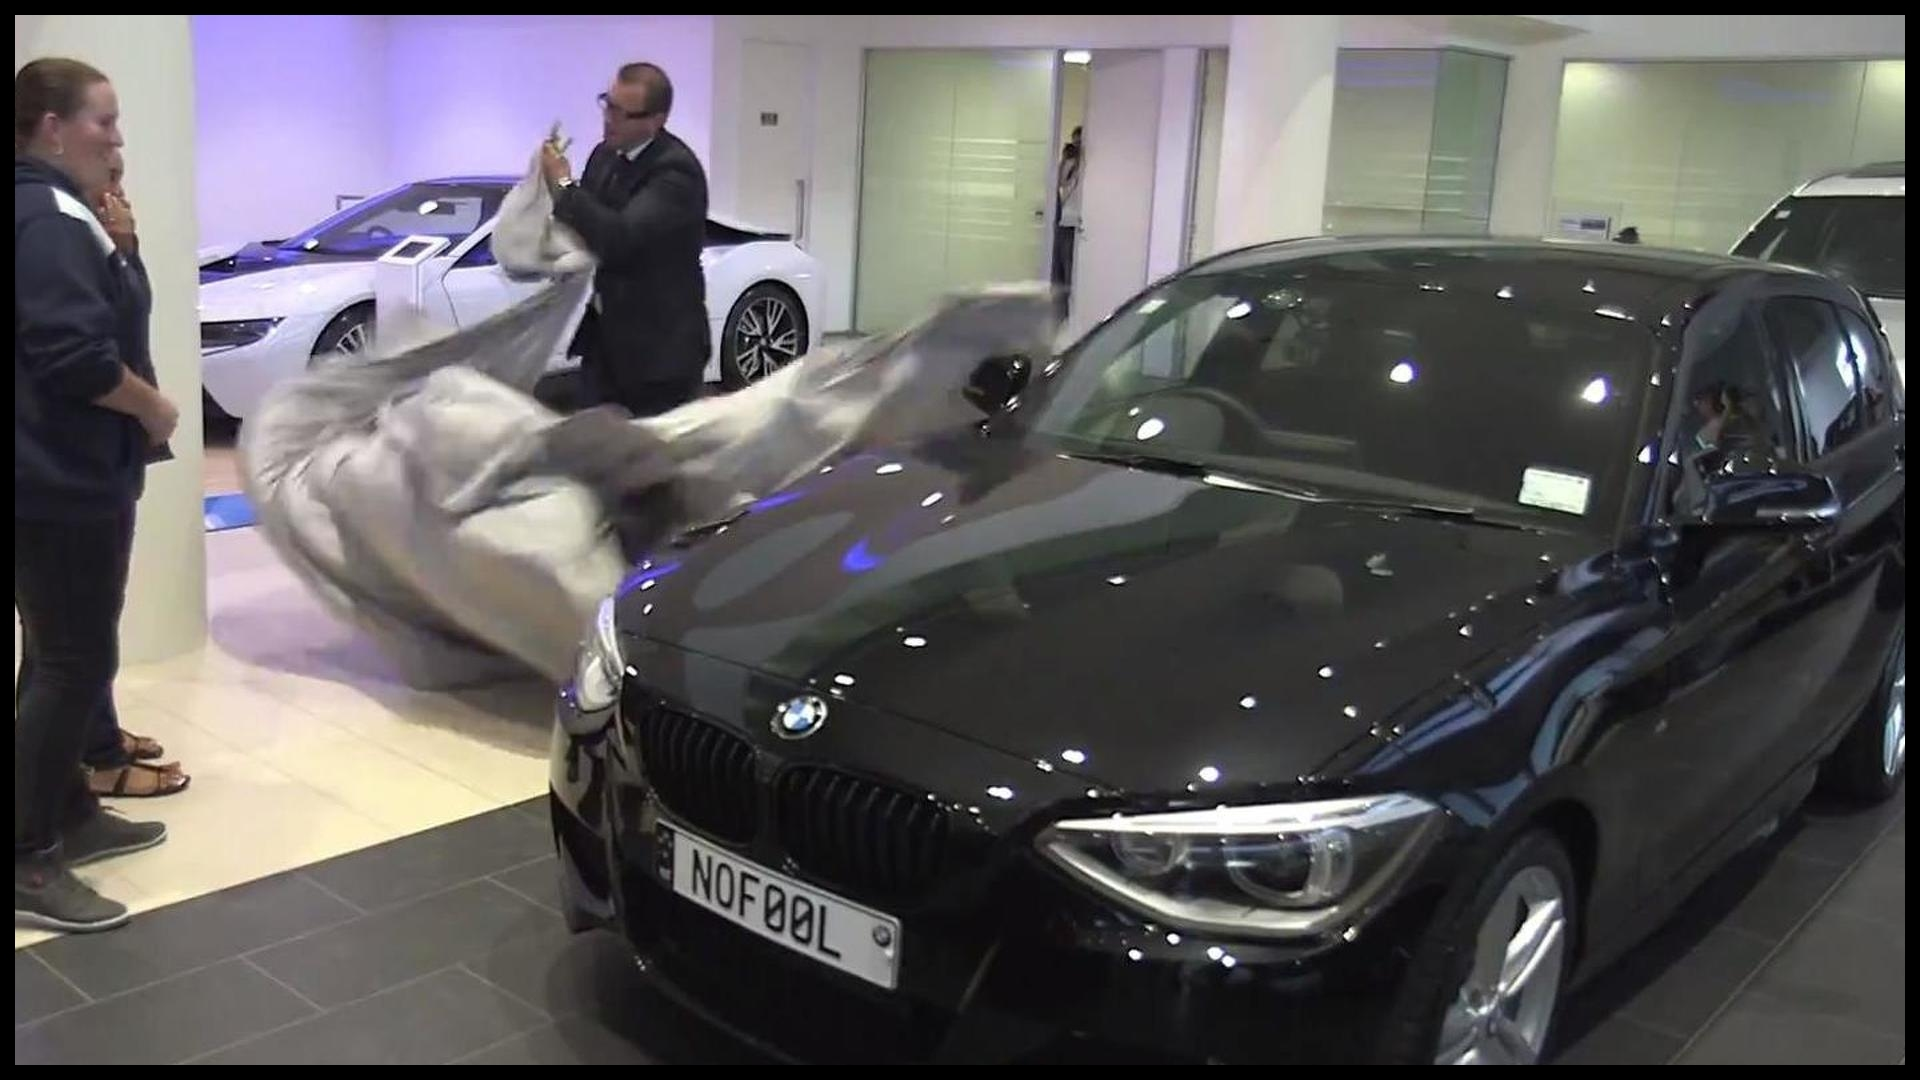 No April Fools Day joke BMW replaces woman s 15 year old Nissan with new 1 Series